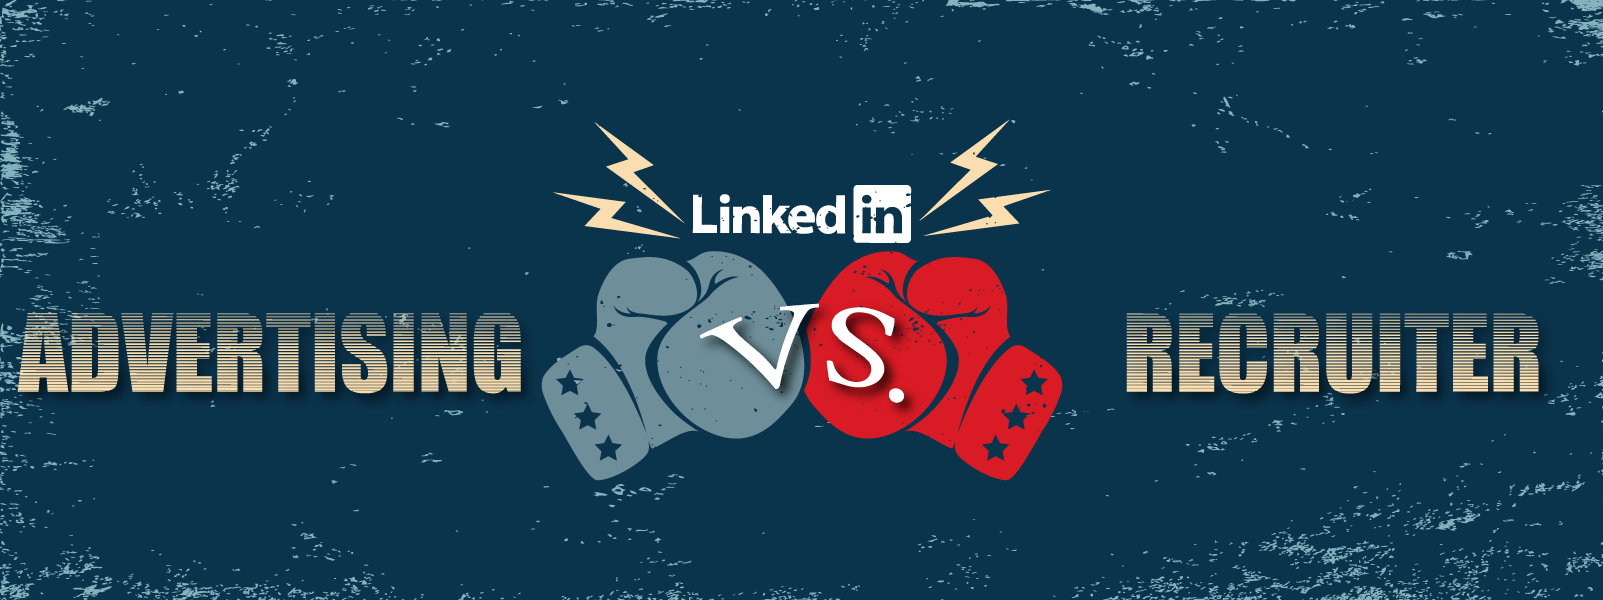 LinkedIn Advertising vs LinkedIn Recruiter: Which Is Best for B2B?